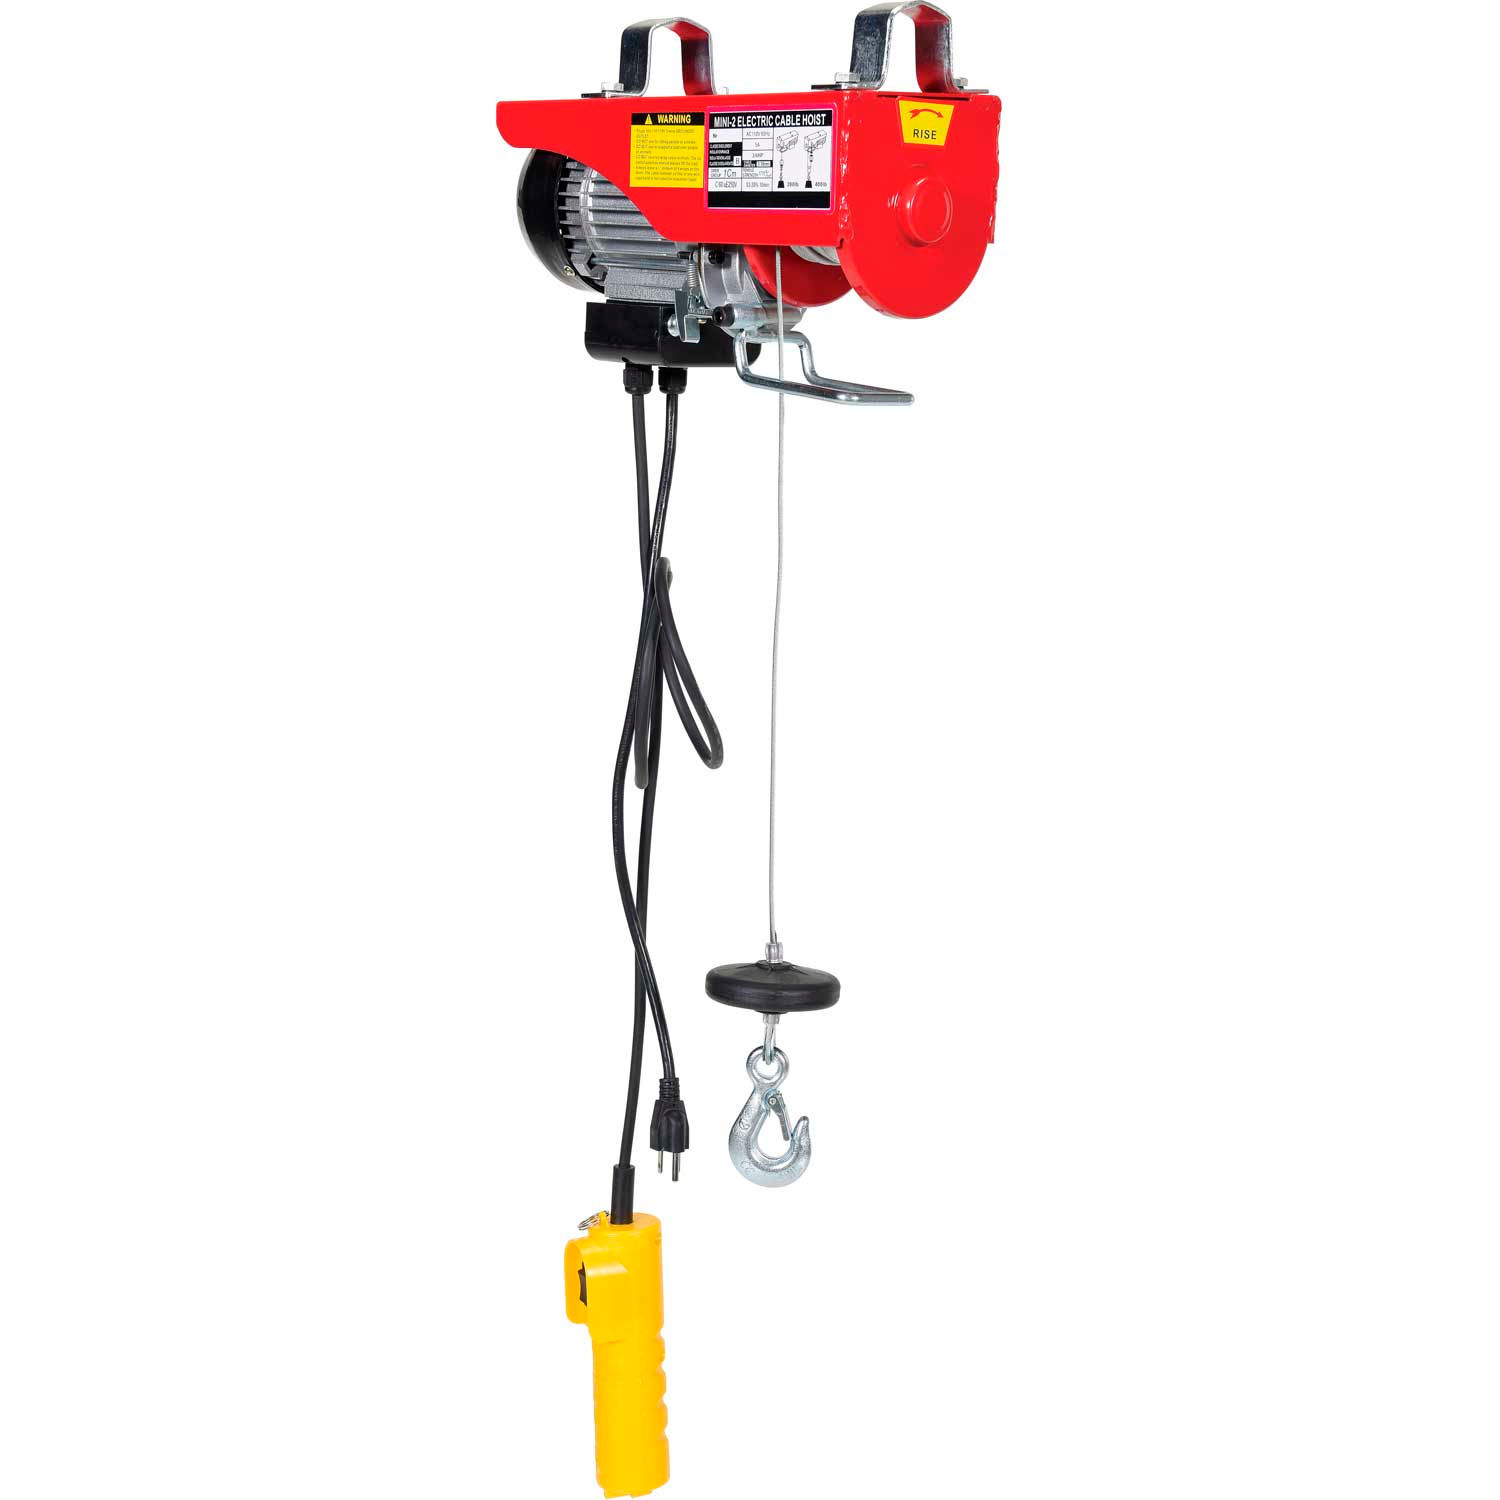 110volt Ac Pullzall Handheld Electric Portable Pulling And Lifting